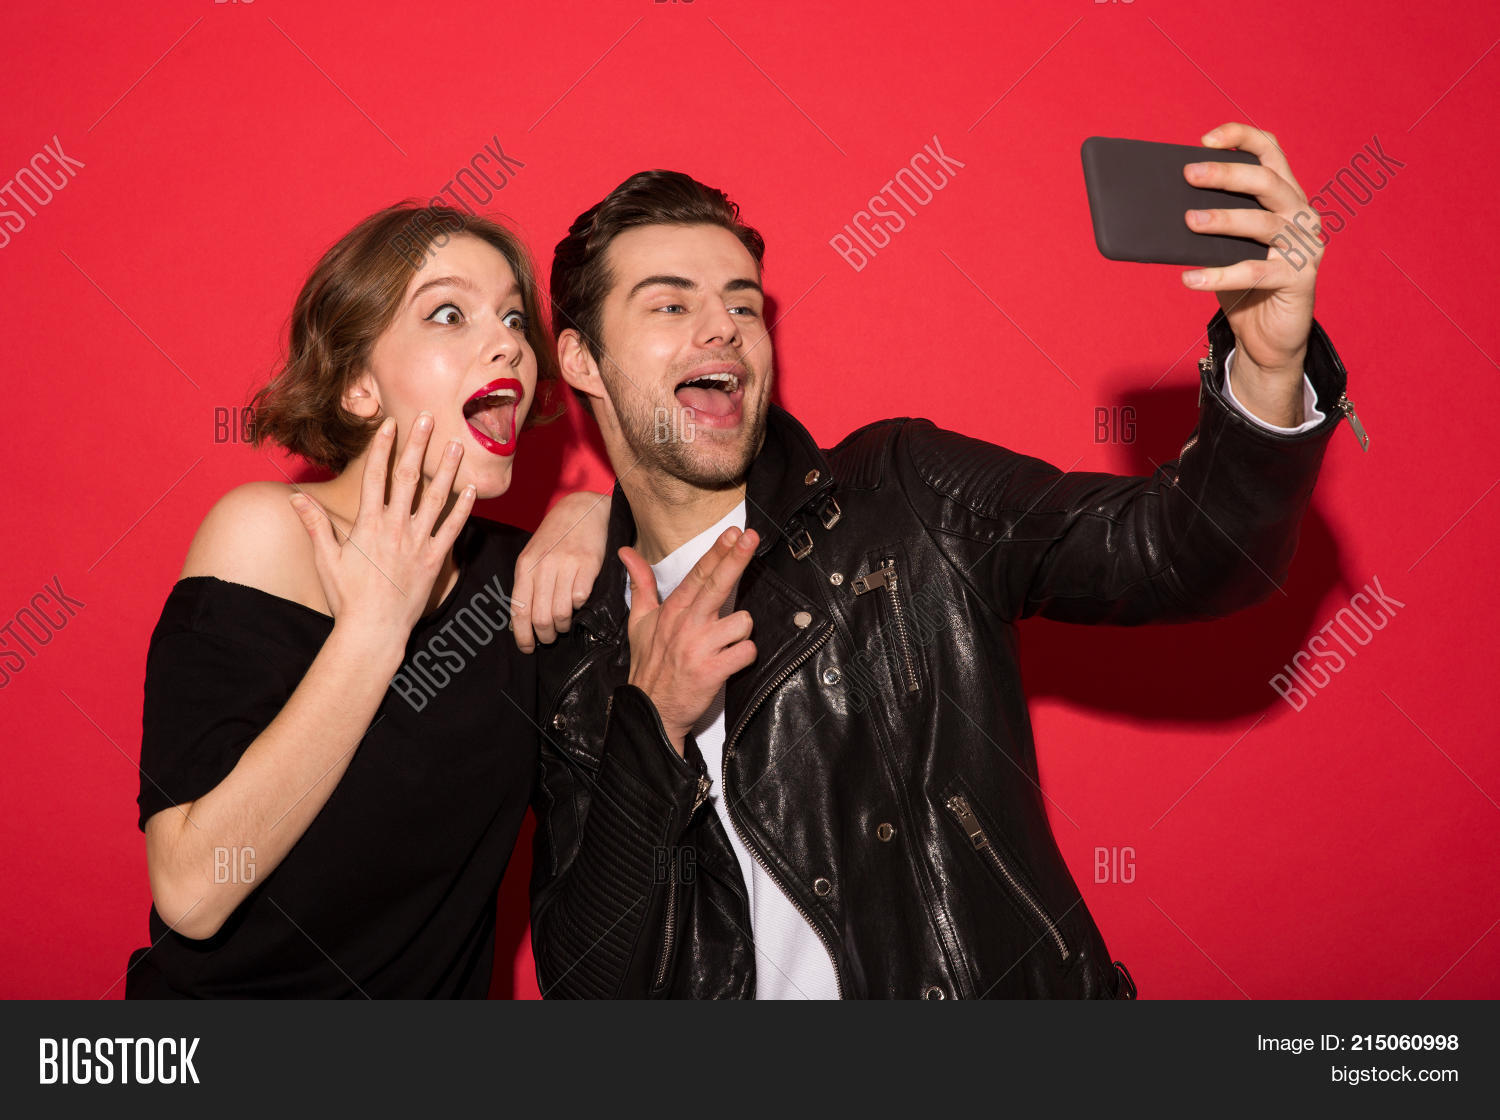 Image Of Happy Screaming Punk Couple Posing And Making Selfie On Smartphone Over Red Background